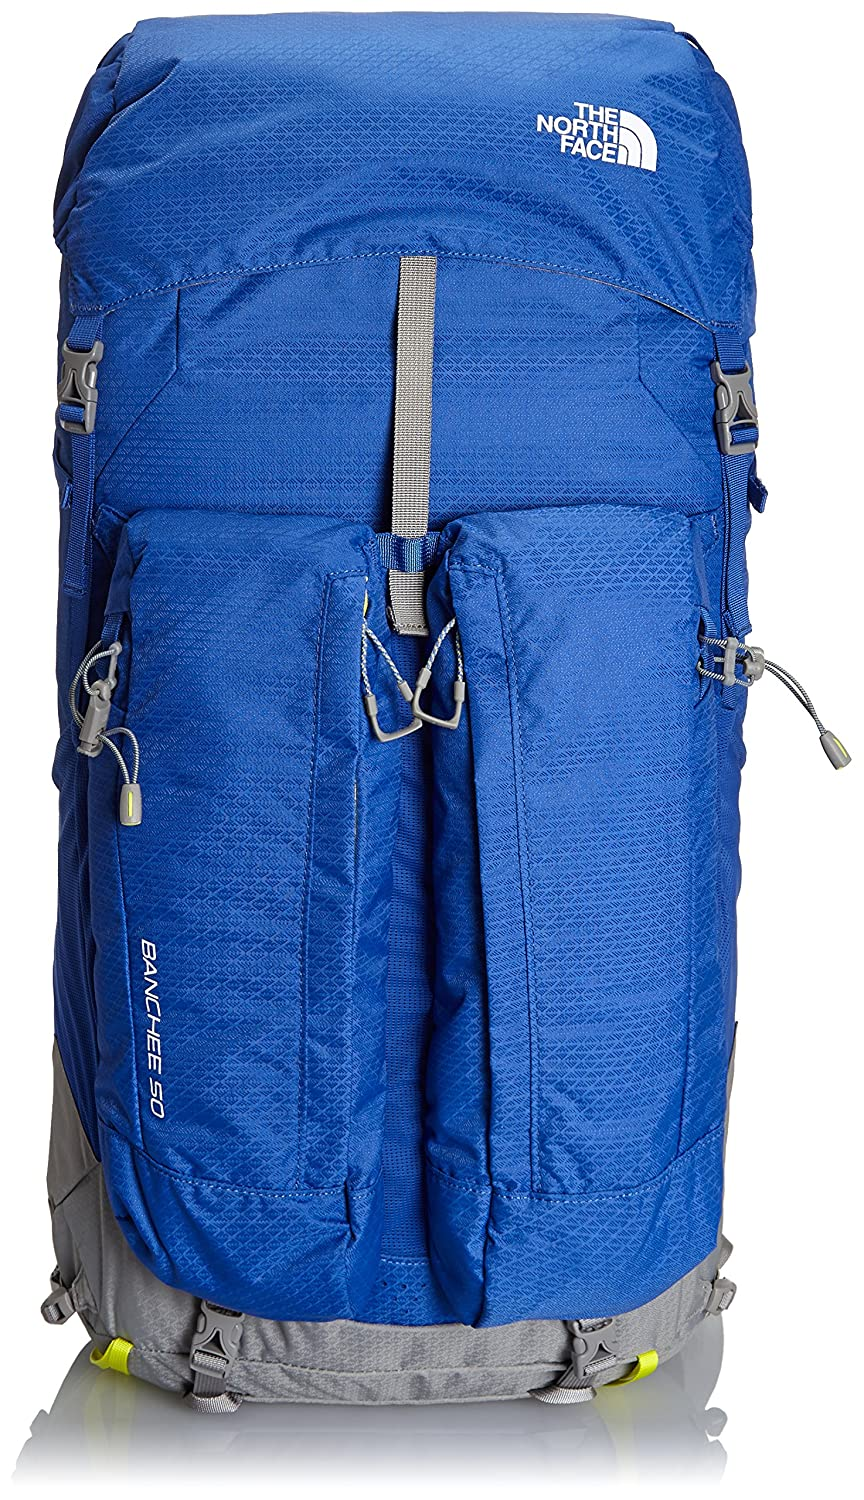 THE NORTH FACE Rucksack Banchee